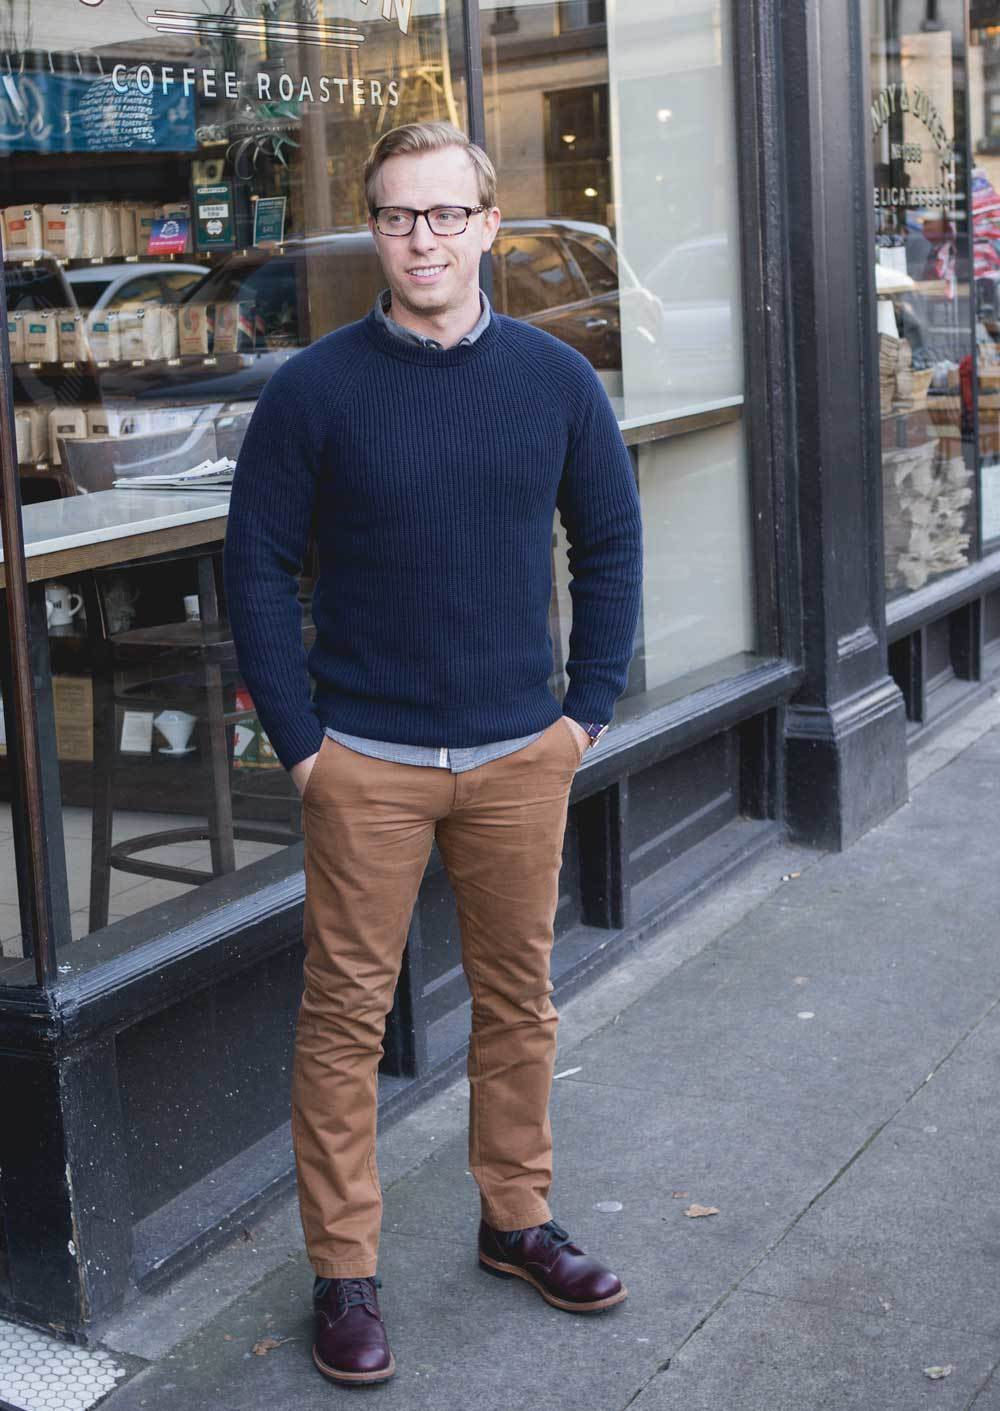 How To Wear Khaki Chinos With a Navy Crew-neck Sweater | Men's Fashion